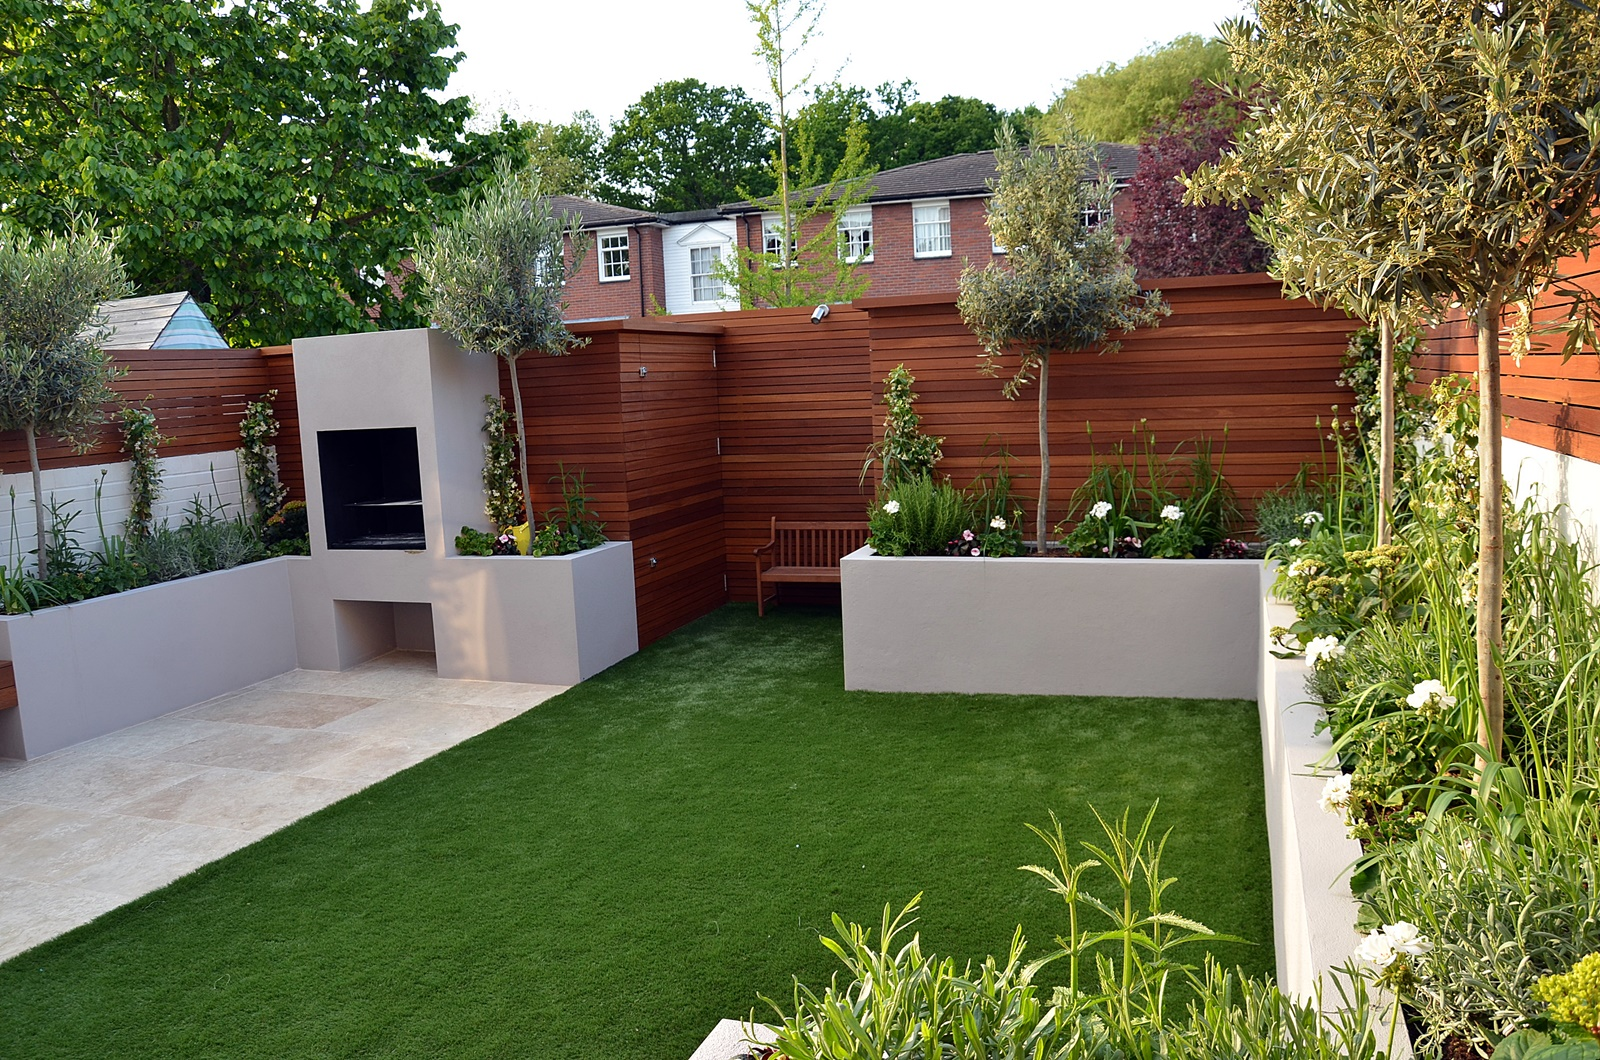 Modern garden design fulham chelsea clapham battersea for Garden designs 2016